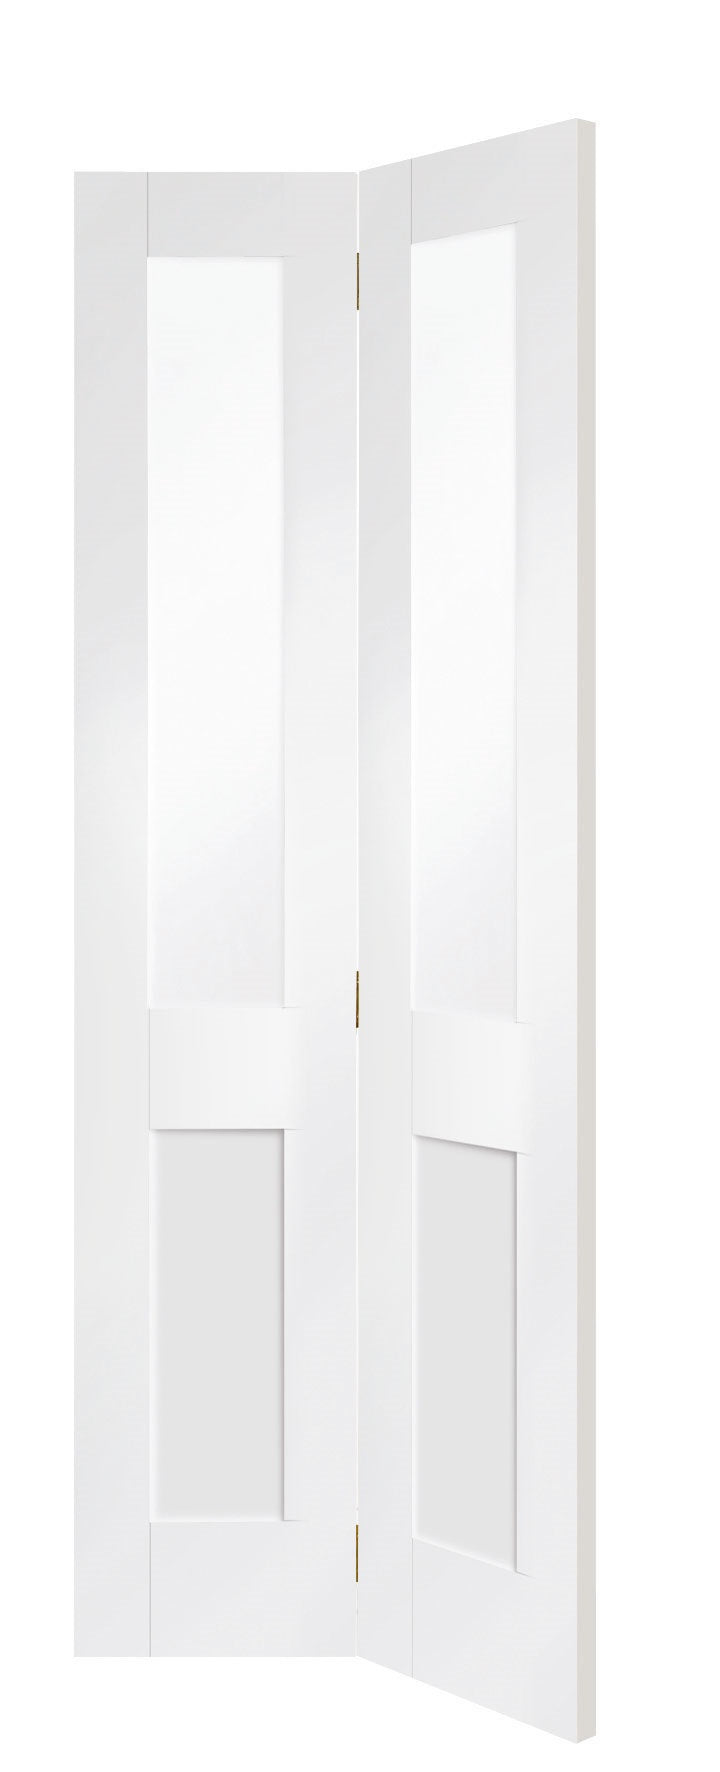 Marston Frosted Glass room divider, 4 Leaf White Prefinished